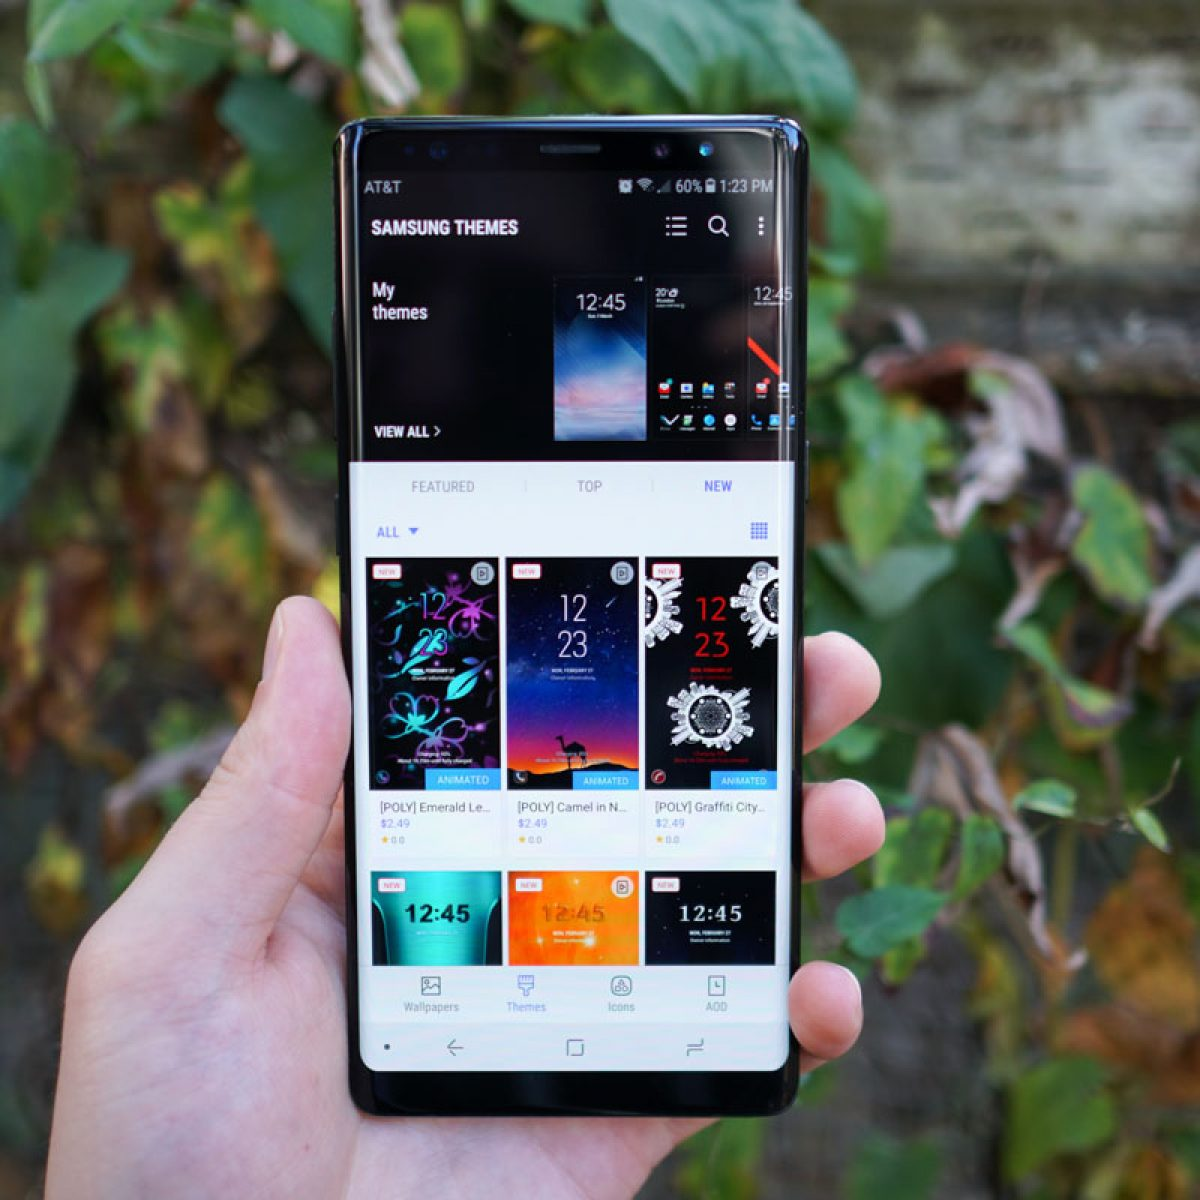 Galaxy Note 8 Themes 5 Favorites To Check Out And Download